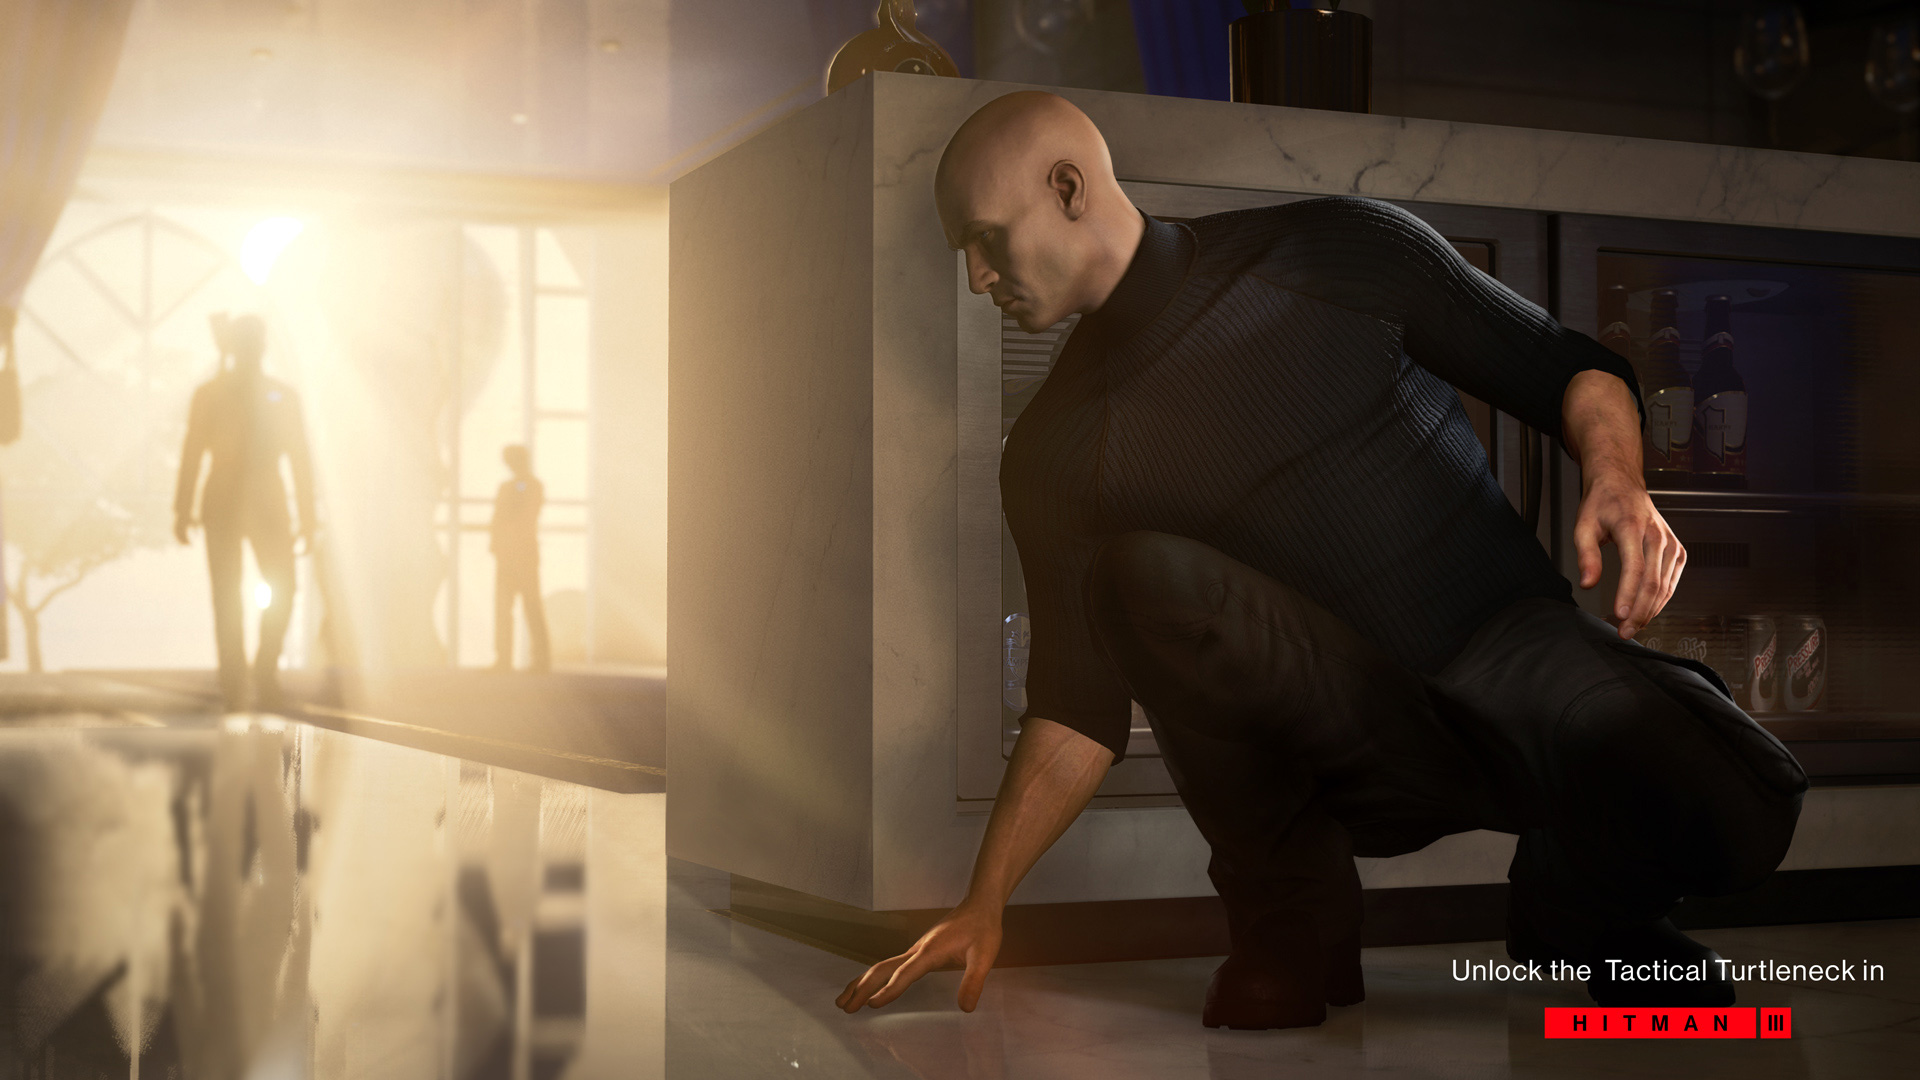 Hitman 3 update adds the Tactical Turtleneck unlock and touches up every level screenshot